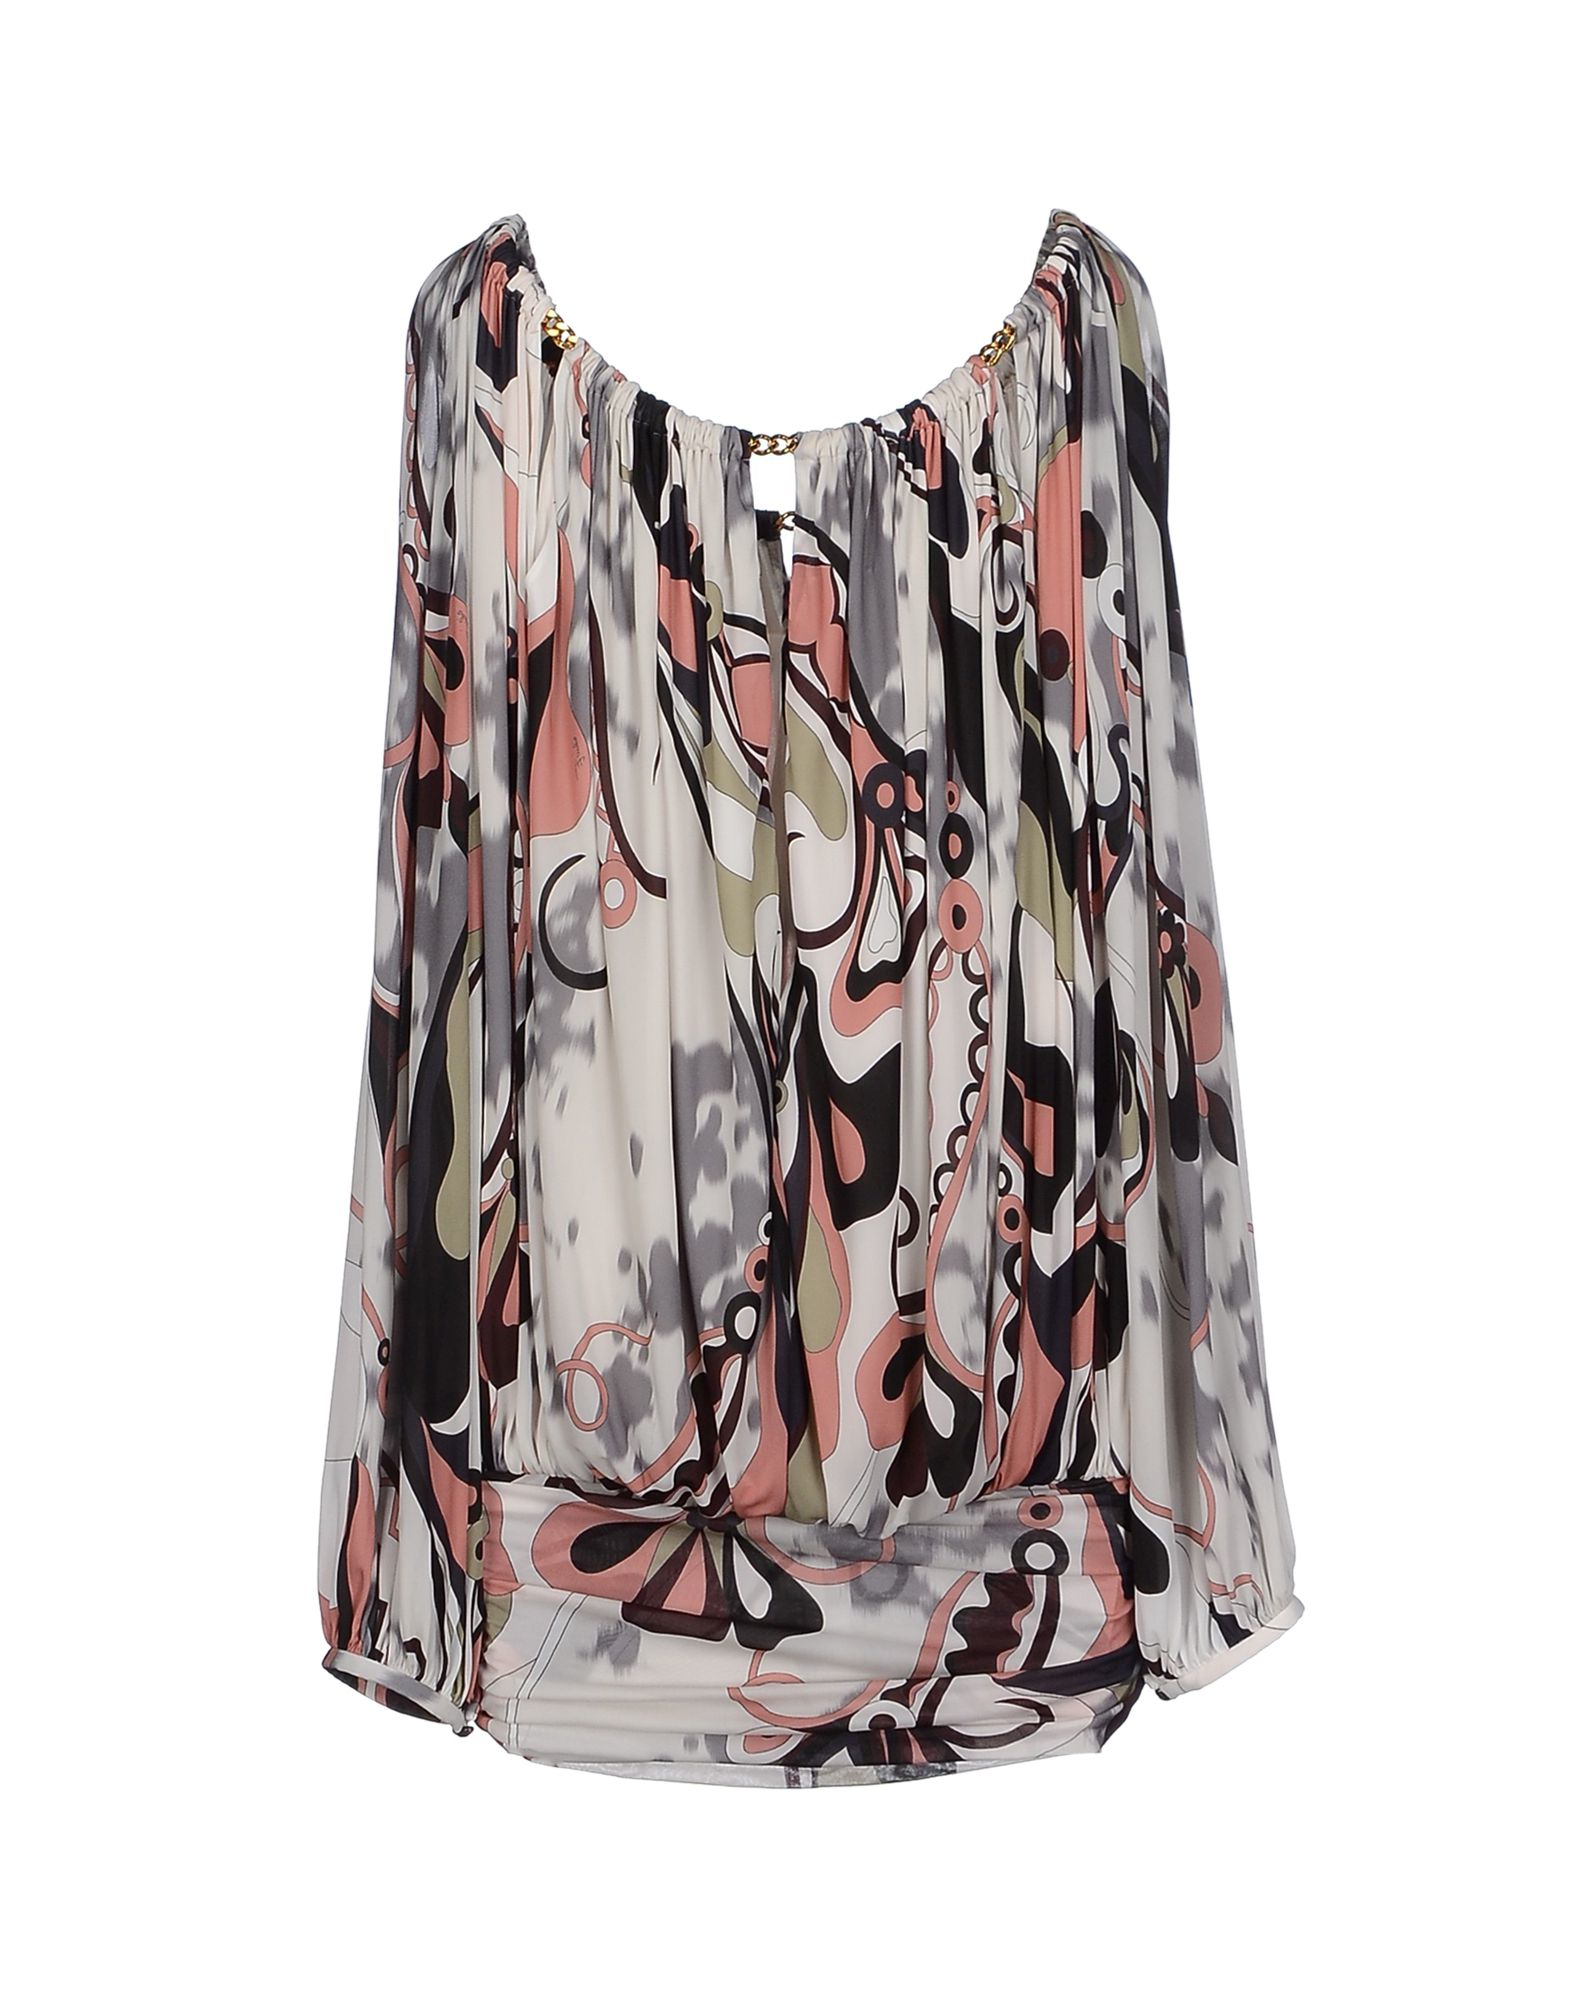 SHIRTS - Blouses Emilio Pucci Free Shipping Good Selling cR5MVLD4R4